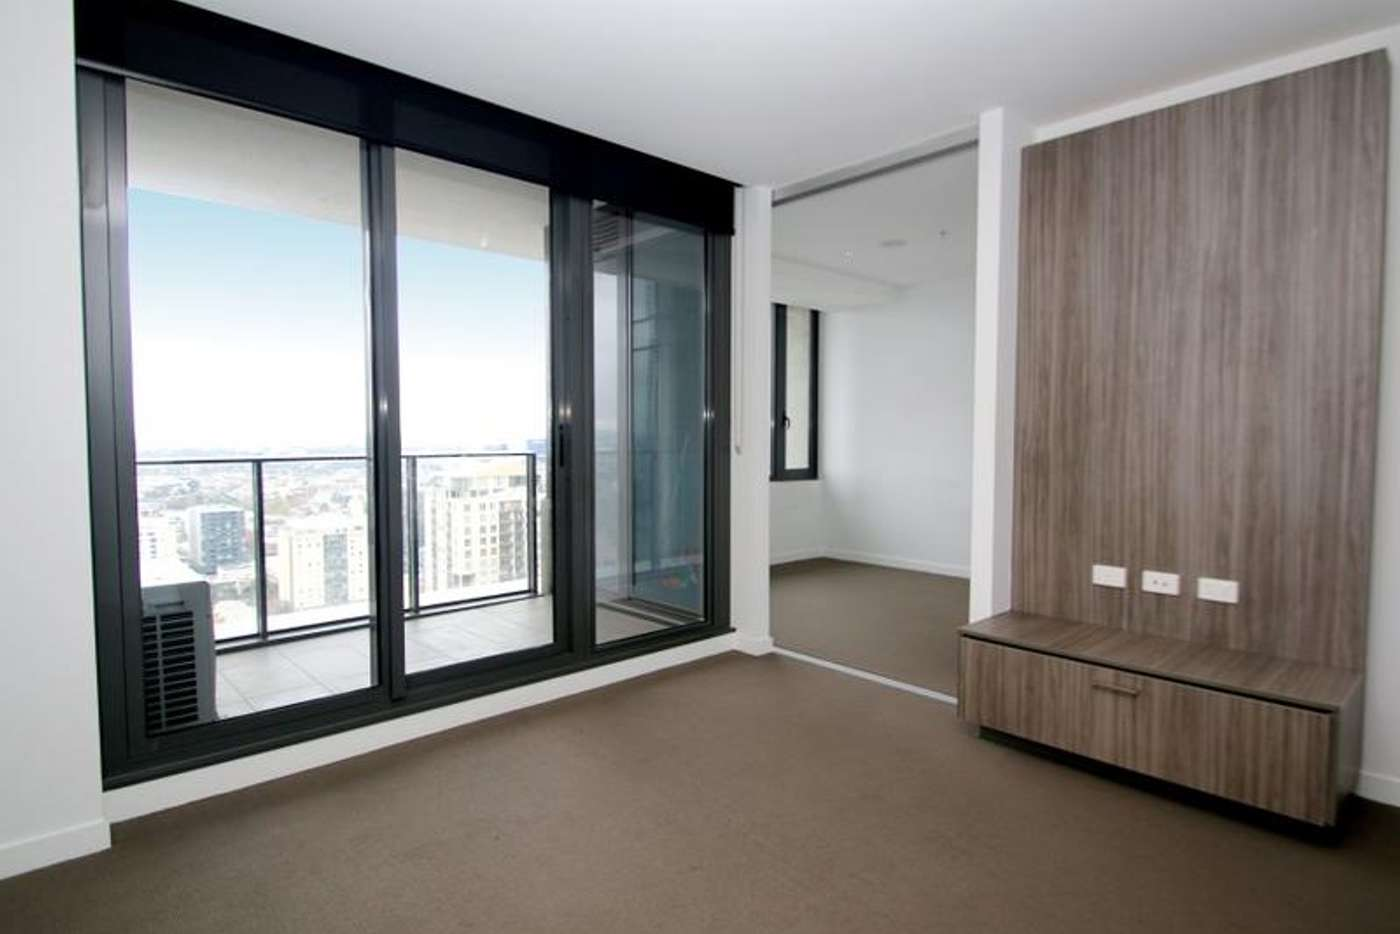 Sixth view of Homely apartment listing, 3218/220 Spencer Street, Melbourne VIC 3000